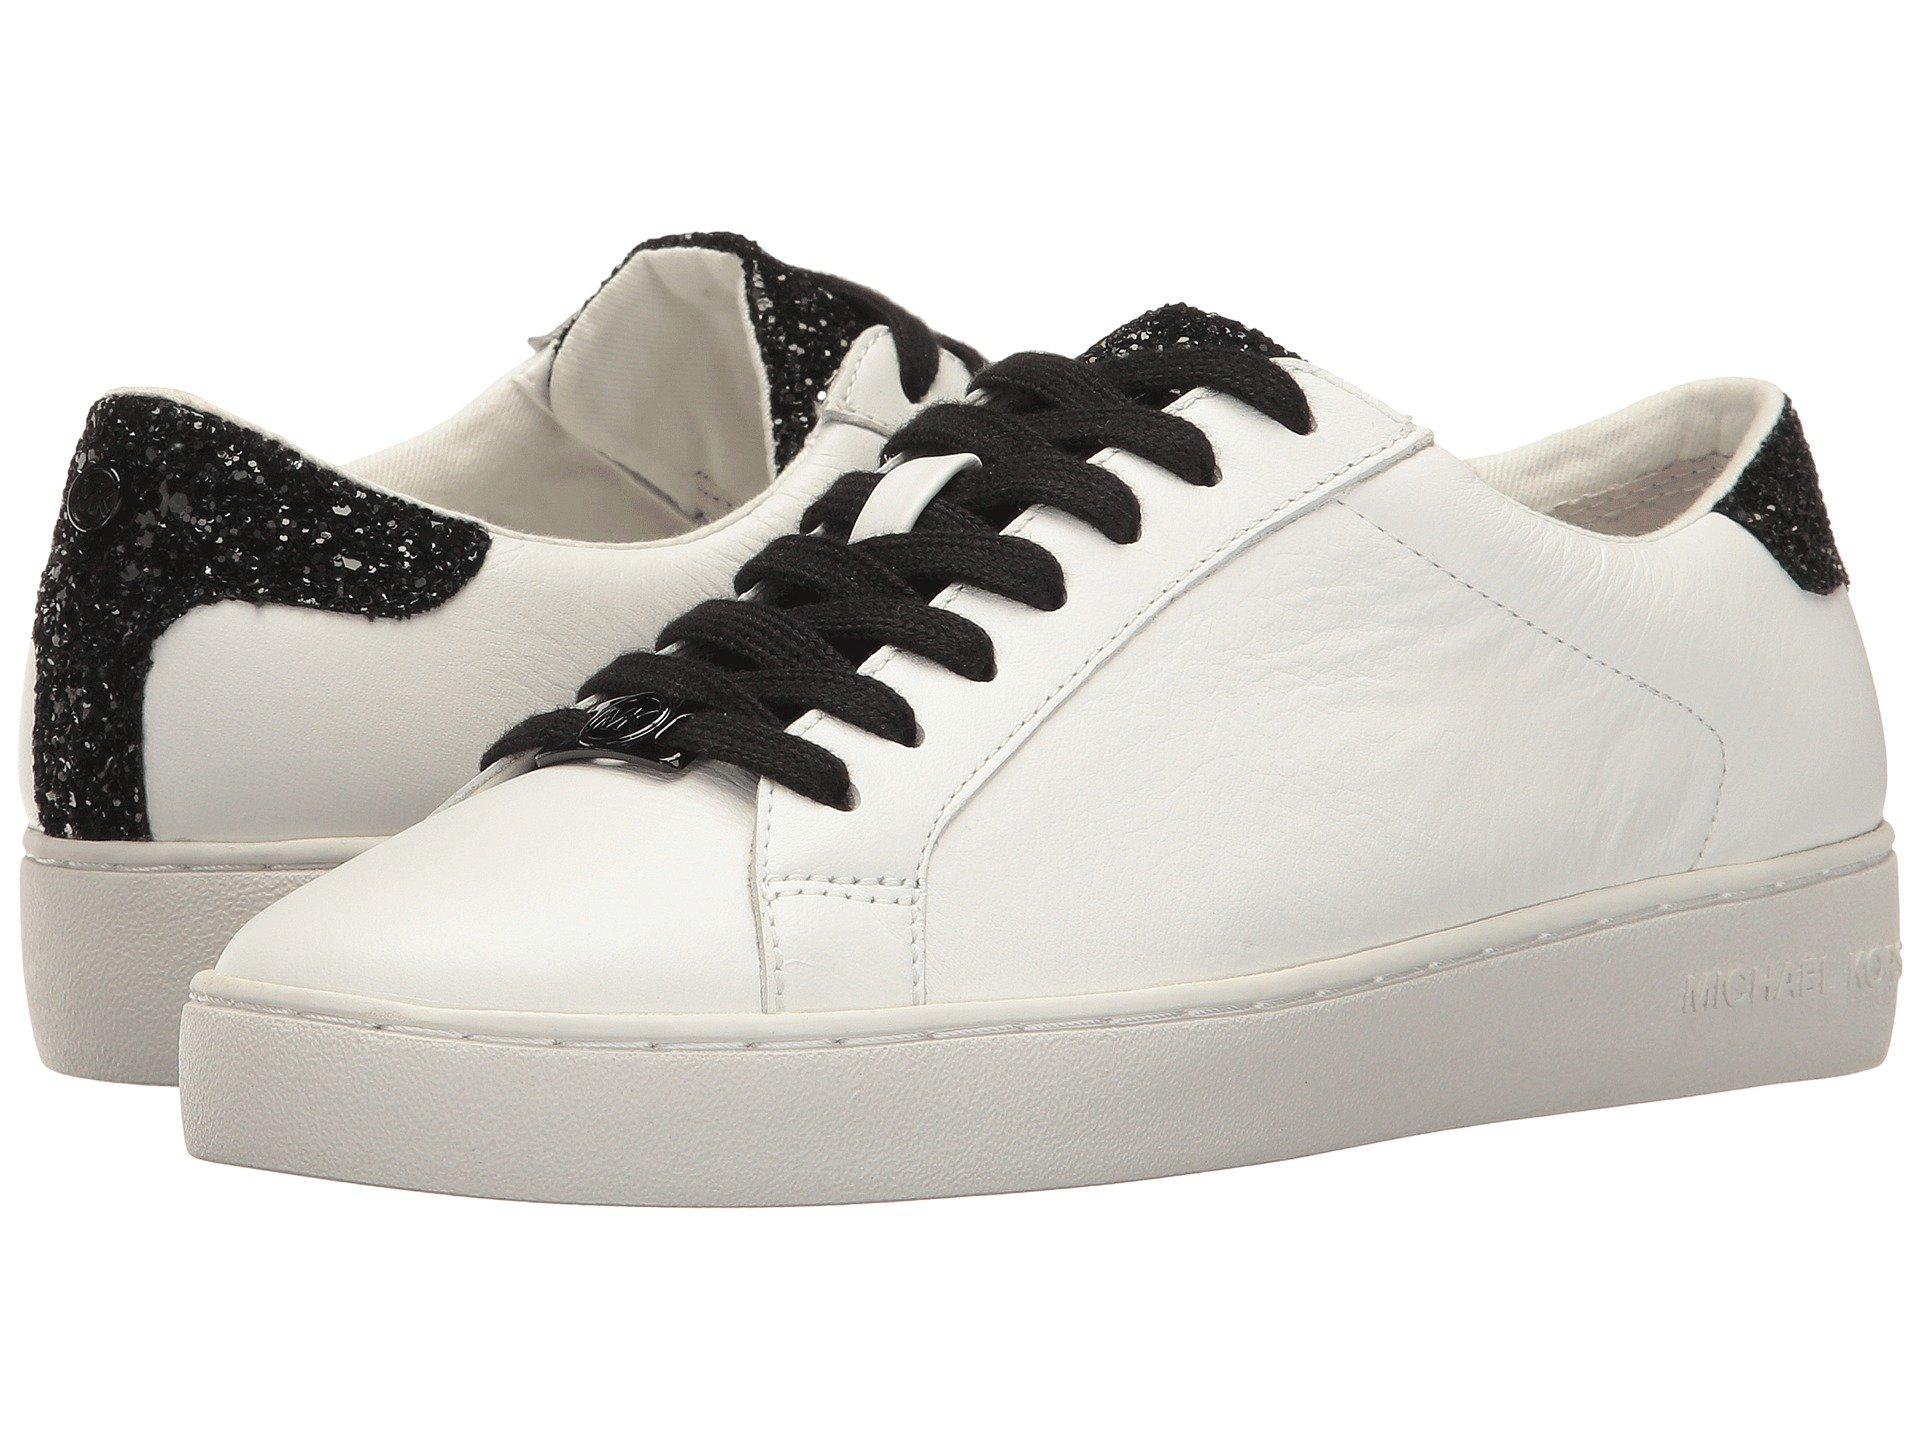 4d8d1fab6a65 Michael Michael Kors Irving Lace-Up In Optic White Black